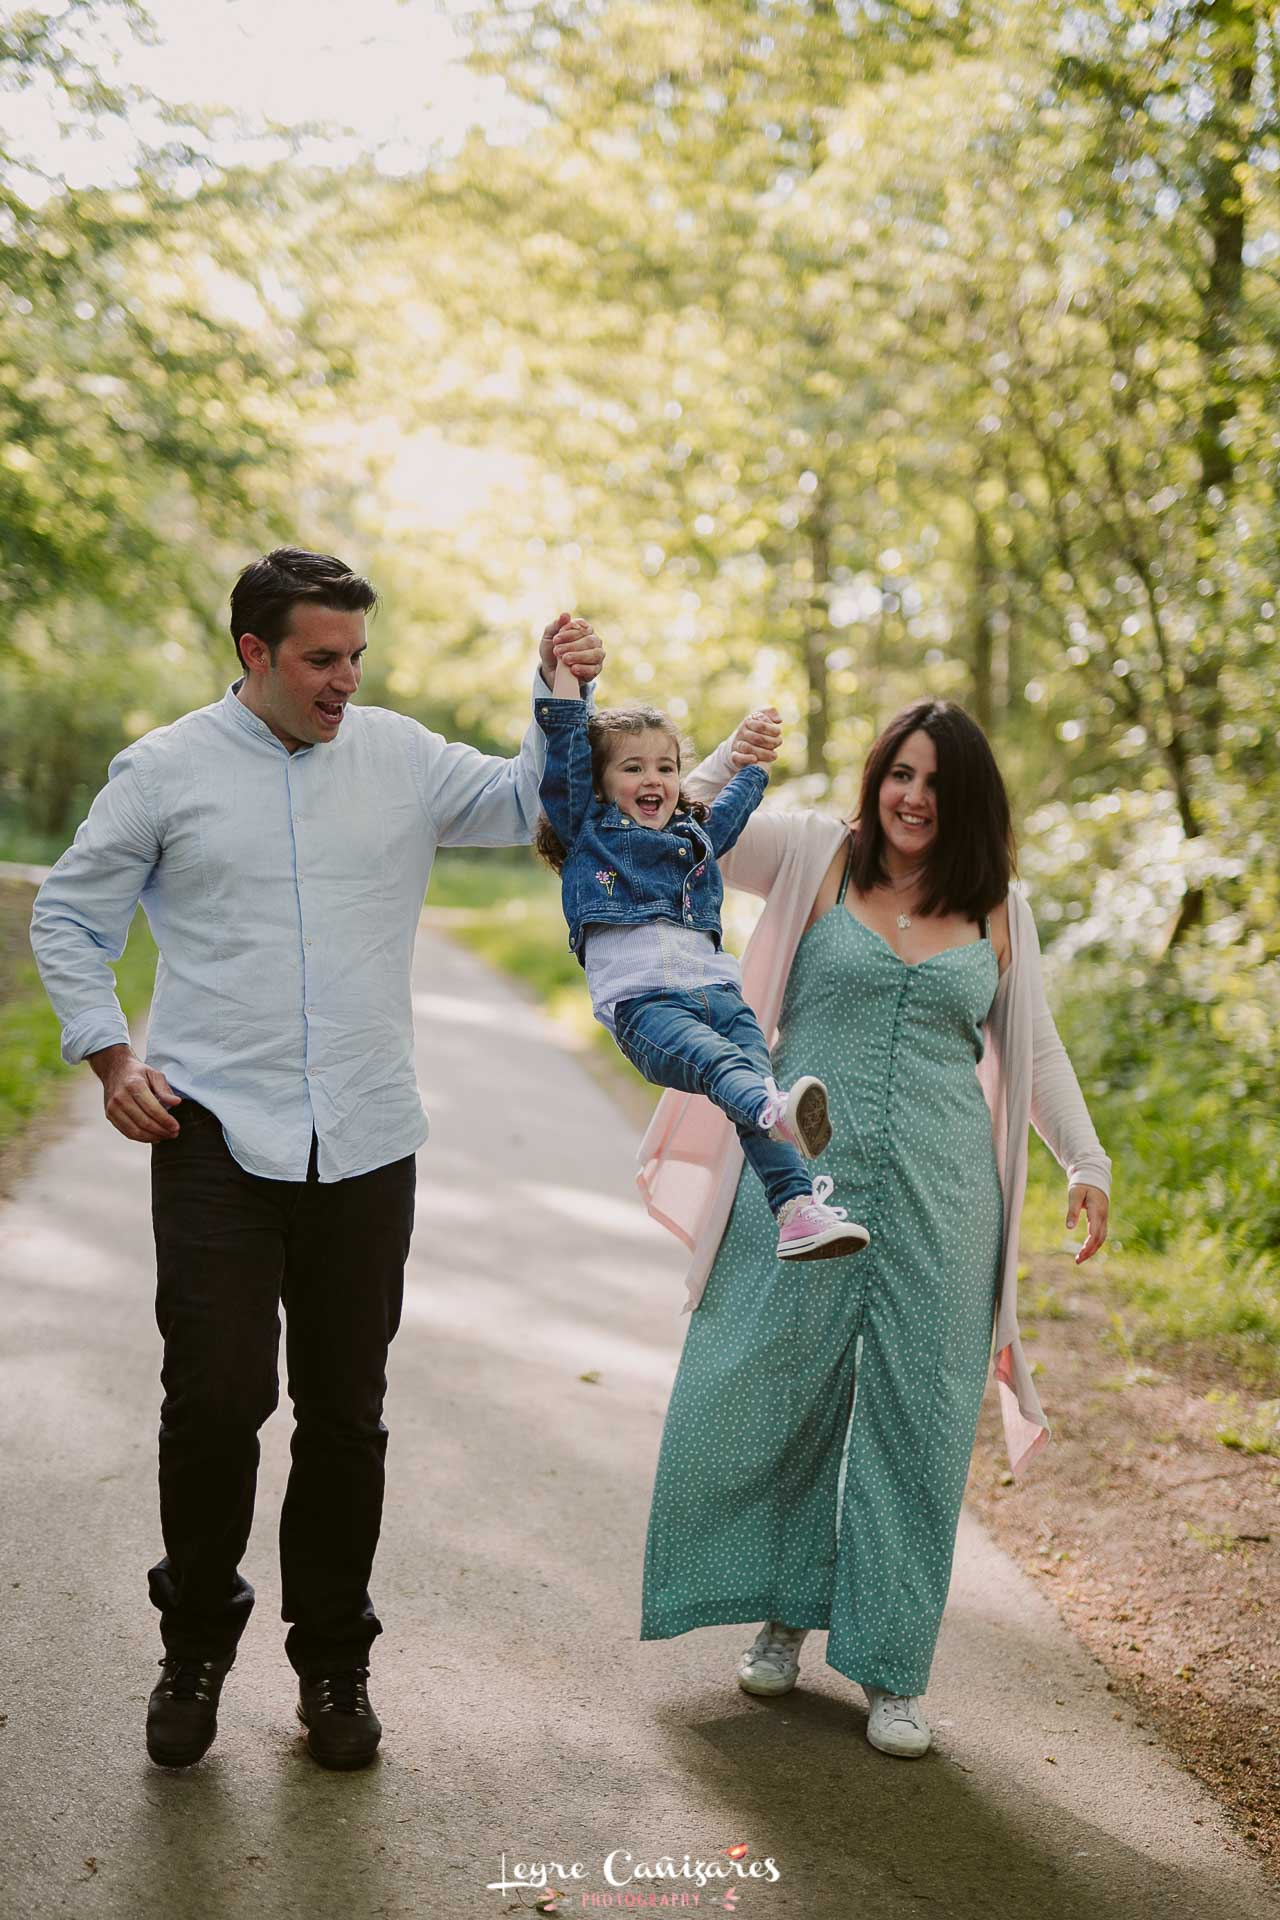 family photography in New York area